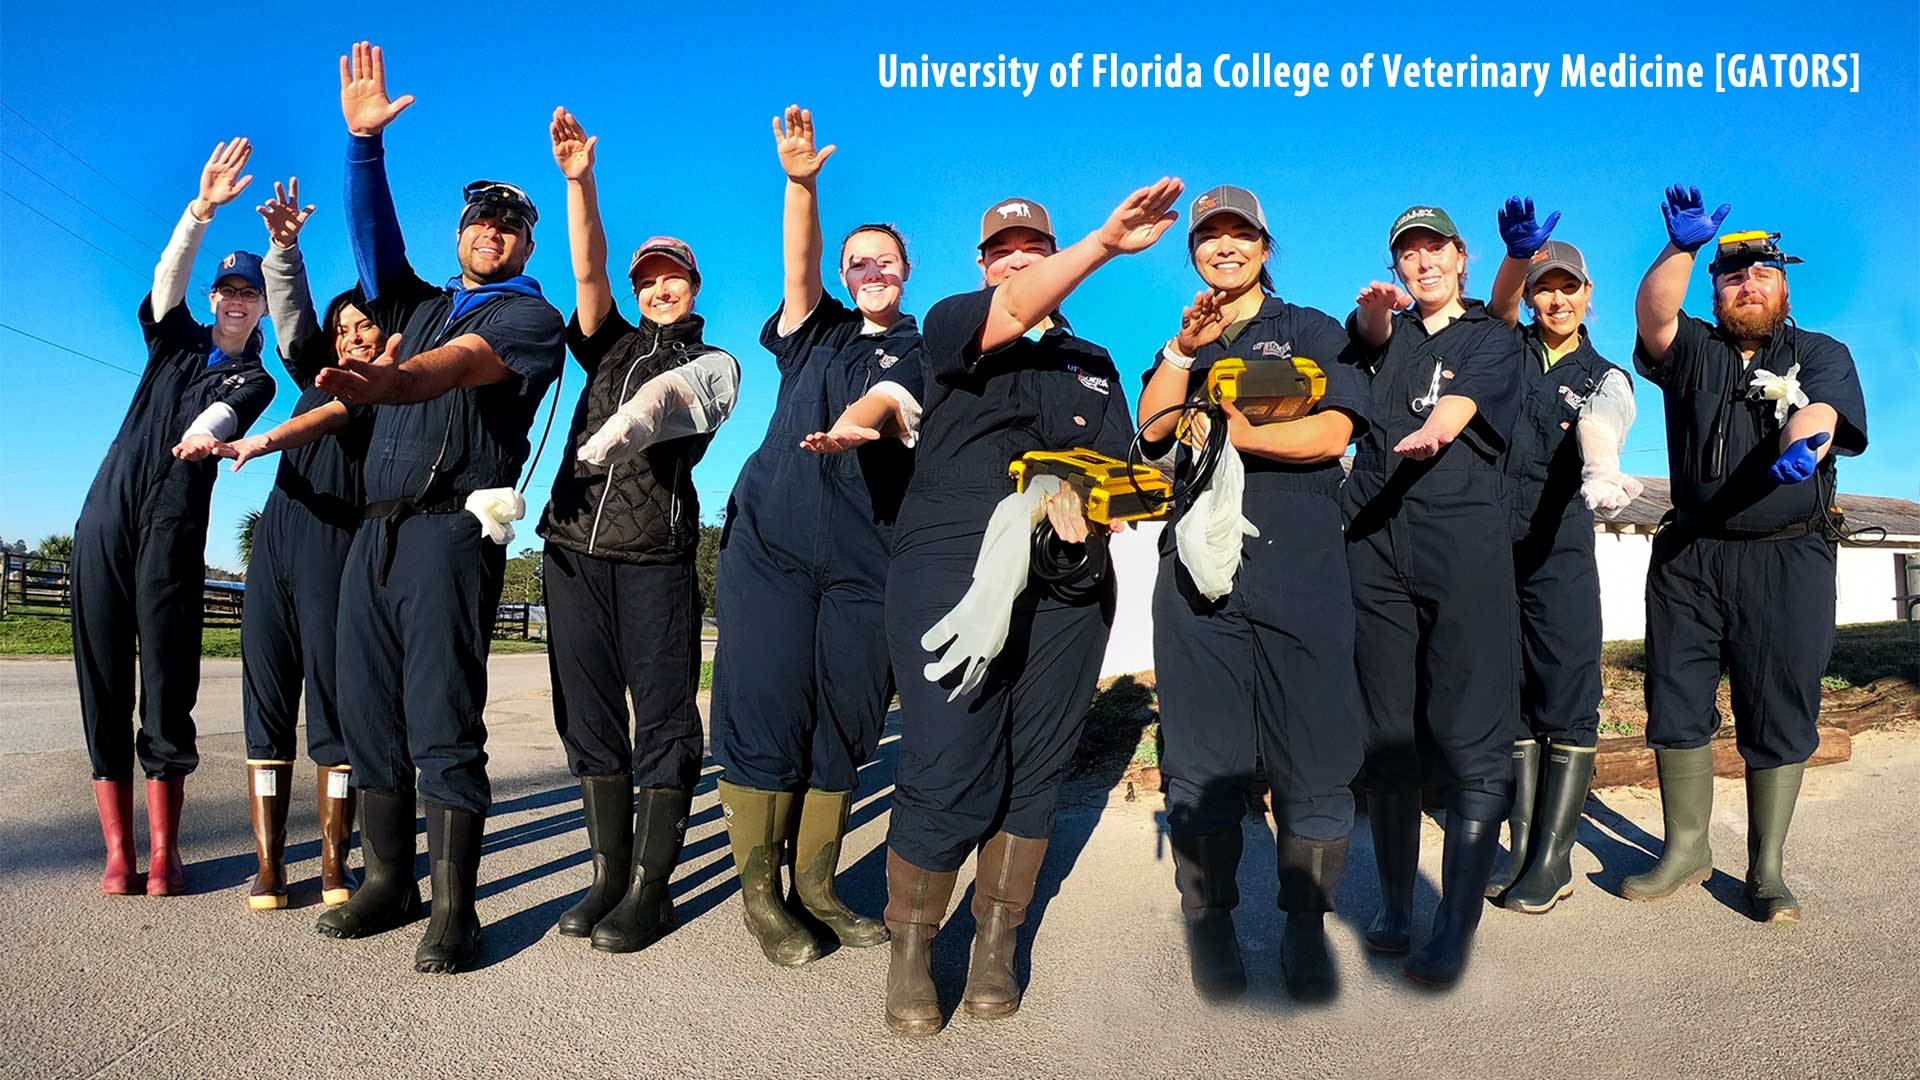 Gators-Vet-students-01-2020-WEB